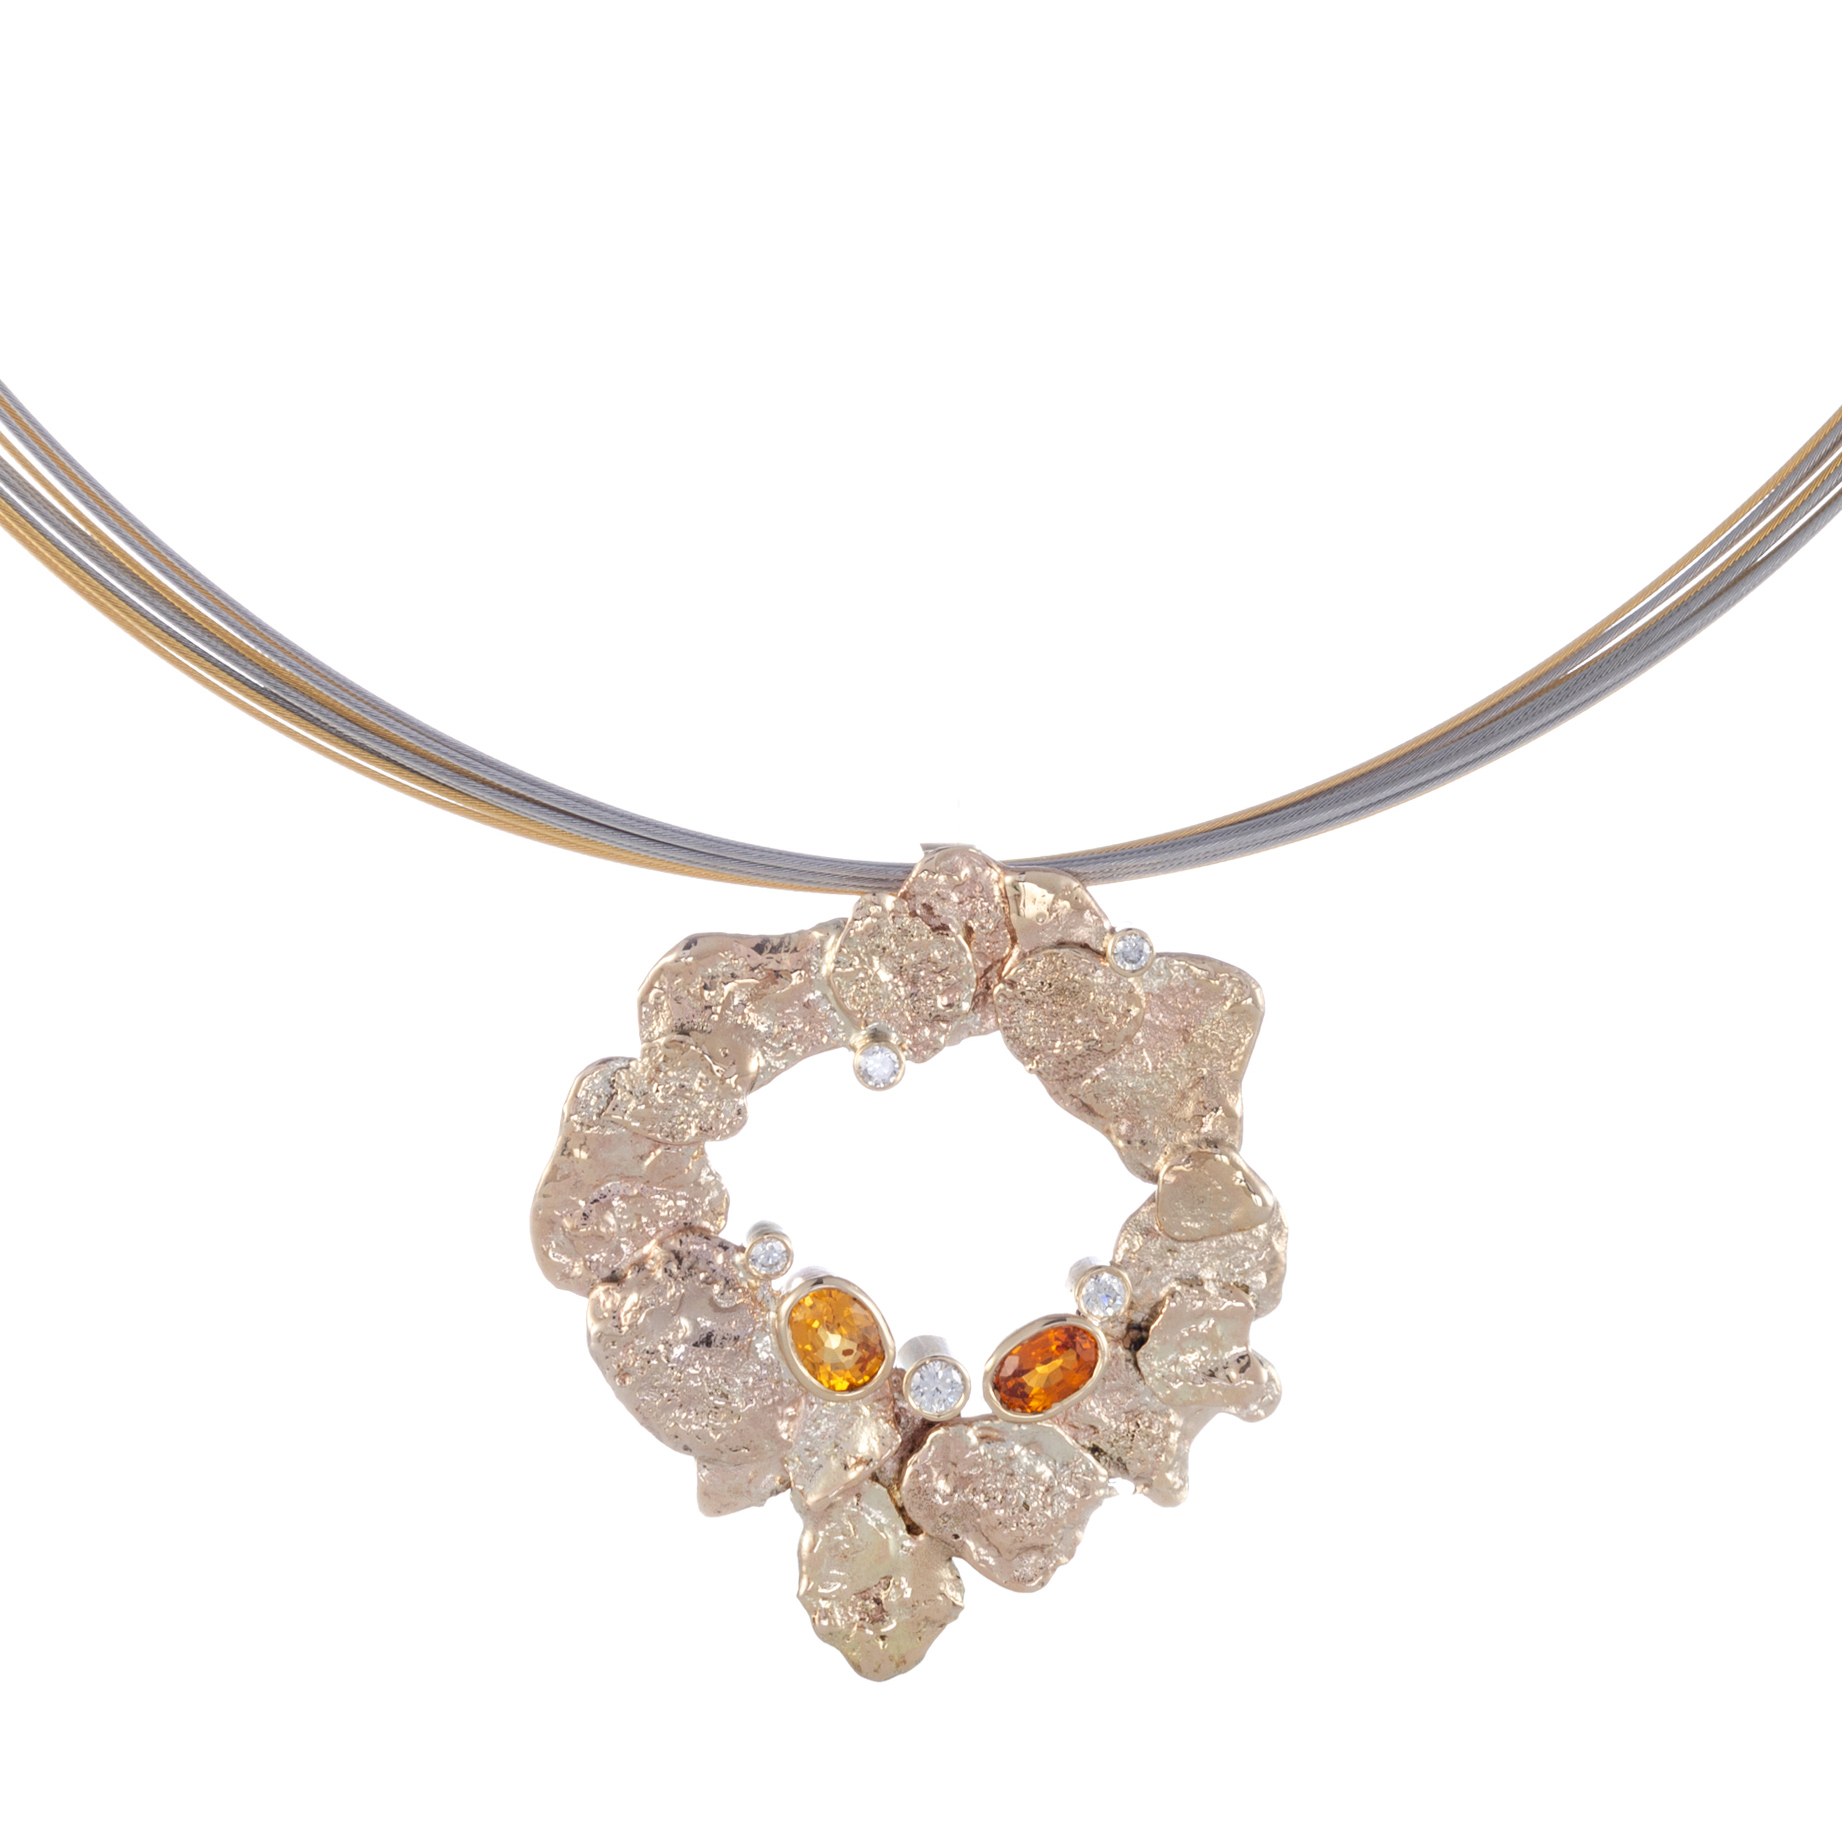 Nuggets of warm recycled gold with orange Sapphires and Diamonds set into the organic design  can be worn on a chain or wire(sold separately) even beads  AVAILABLE  .